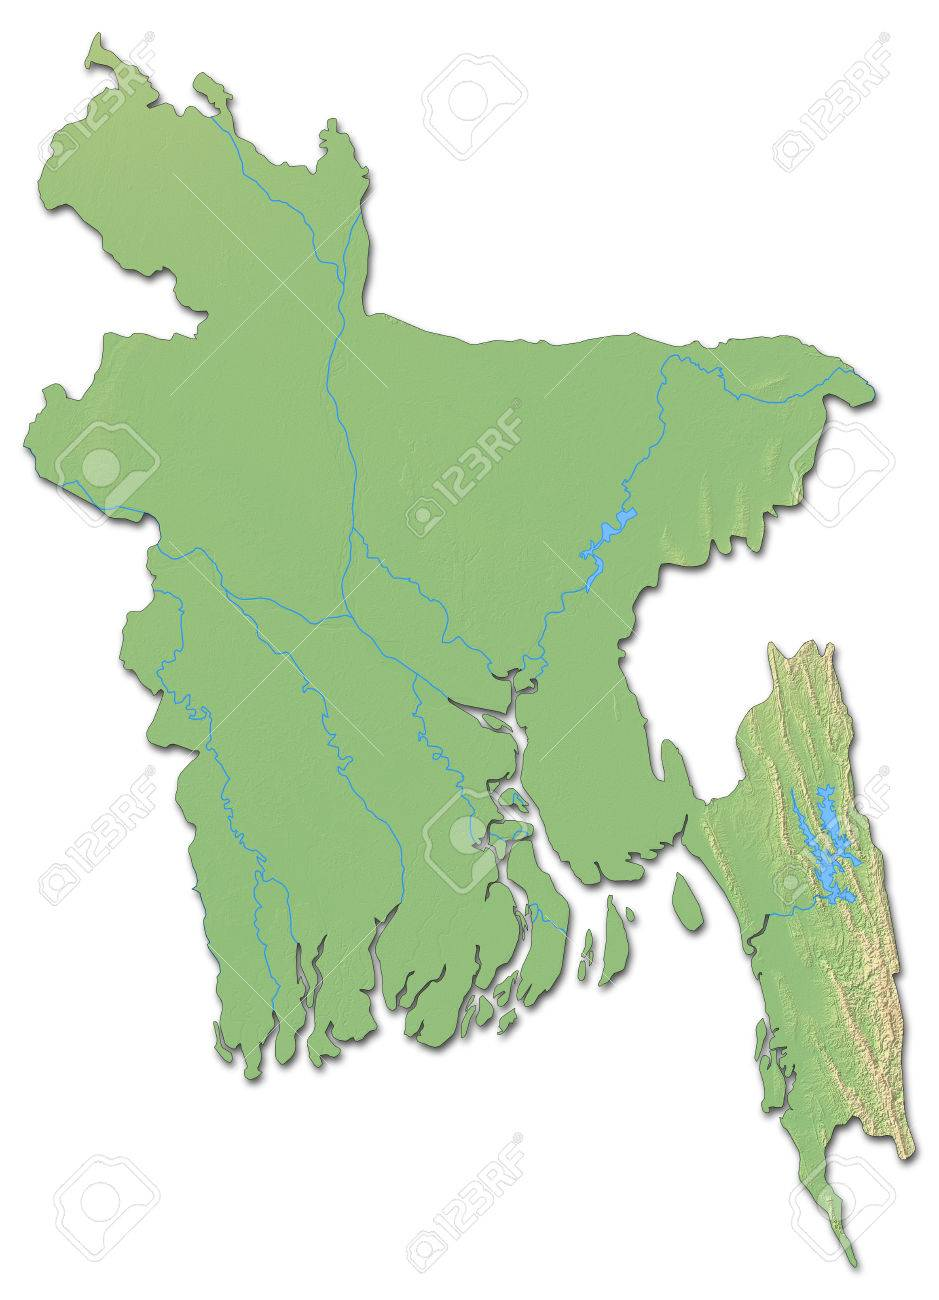 Relief Map Of Bangladesh With Shaded Relief